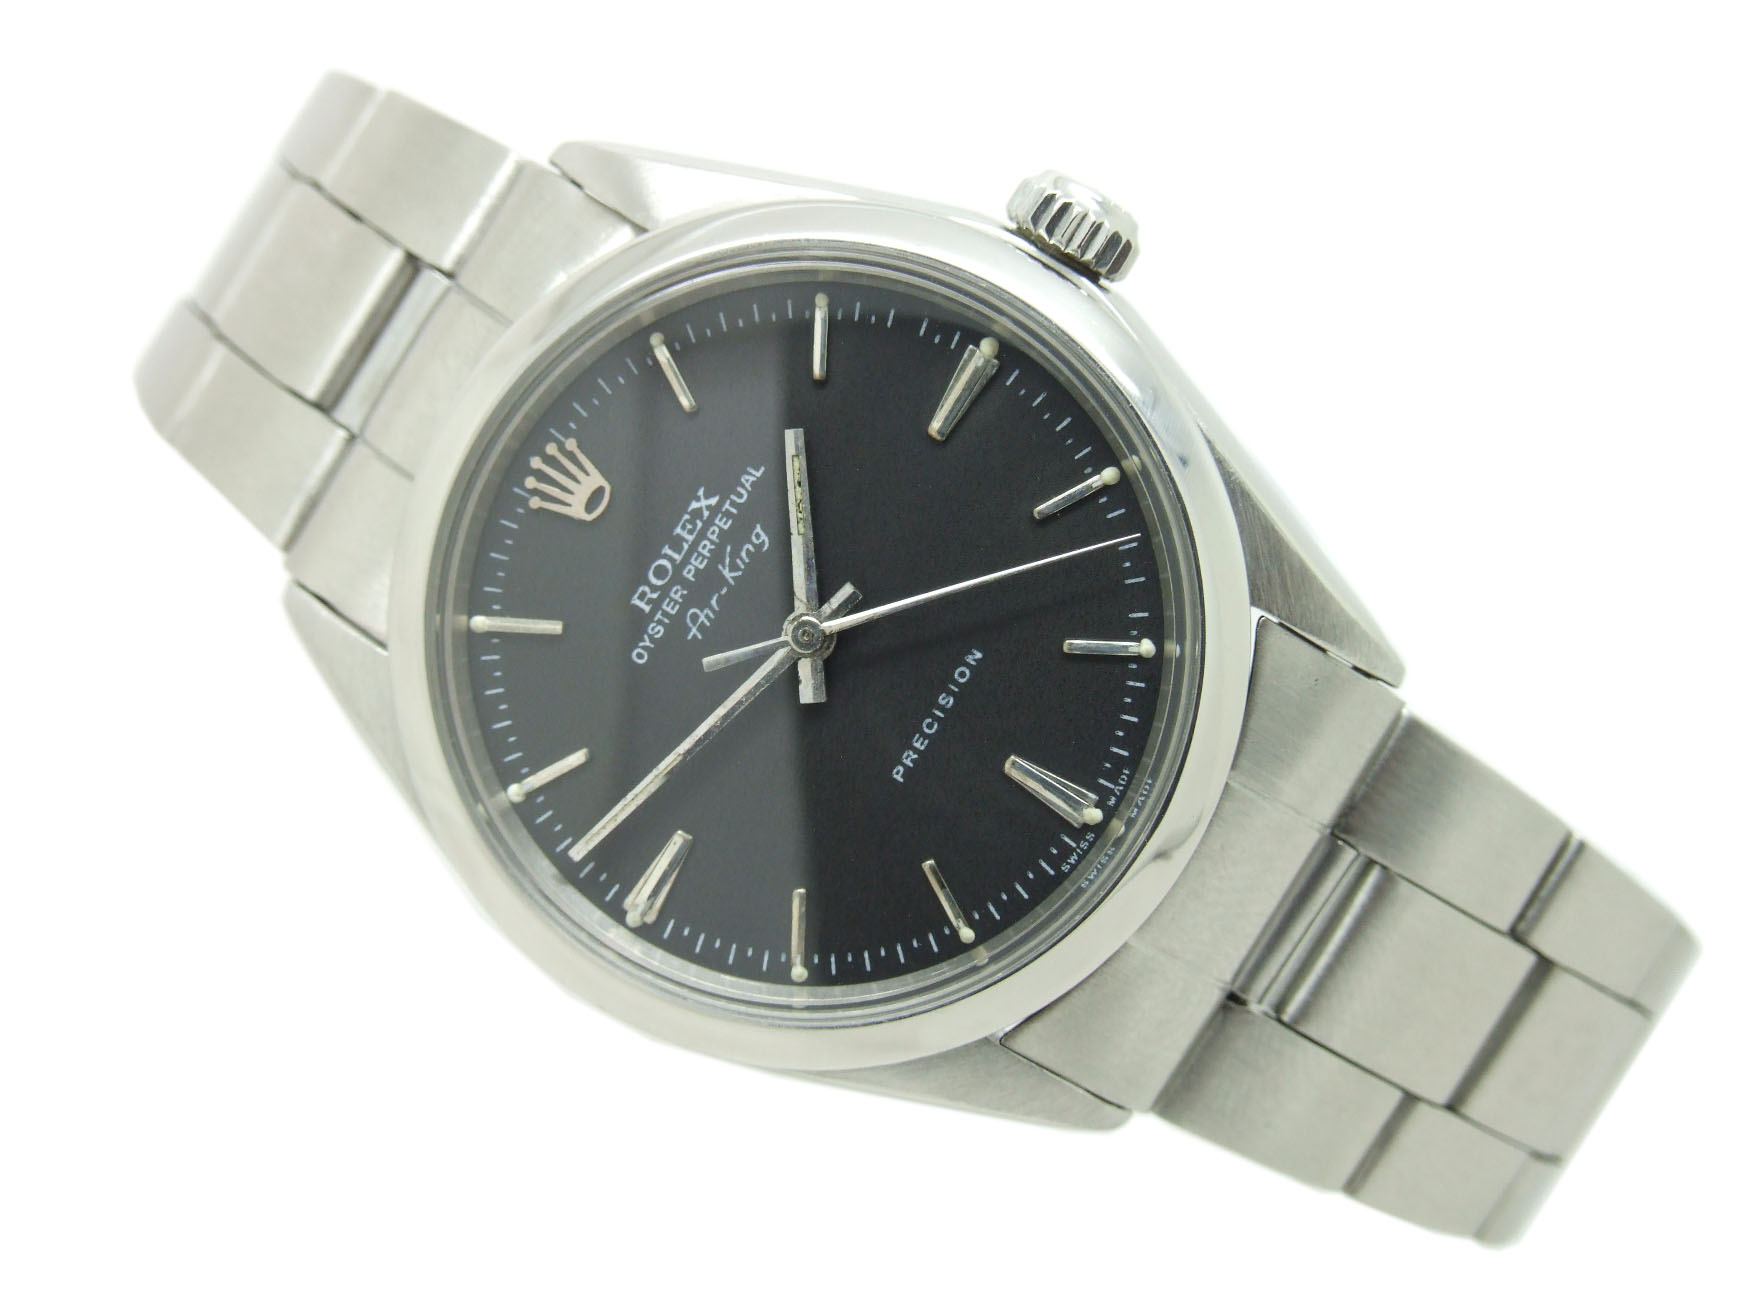 Sold 1968 rolex oyster perpetual air king vintage watch with box papers vw616 vintage for Vintage rolex oyster